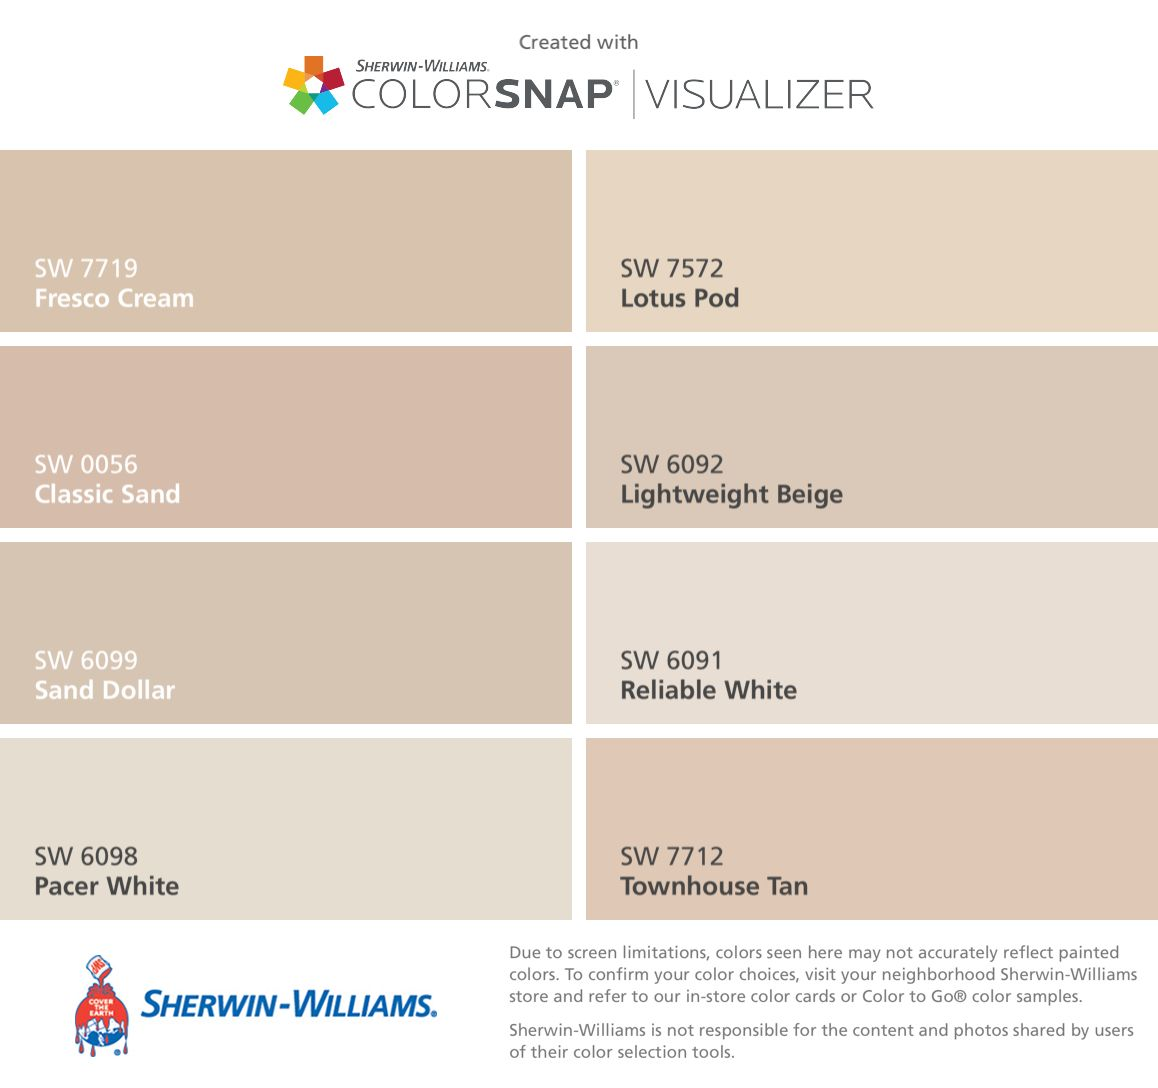 Poised Taupe Sherwin Williams I Found These Colors With Colorsnap 174 Visualizer For Iphone